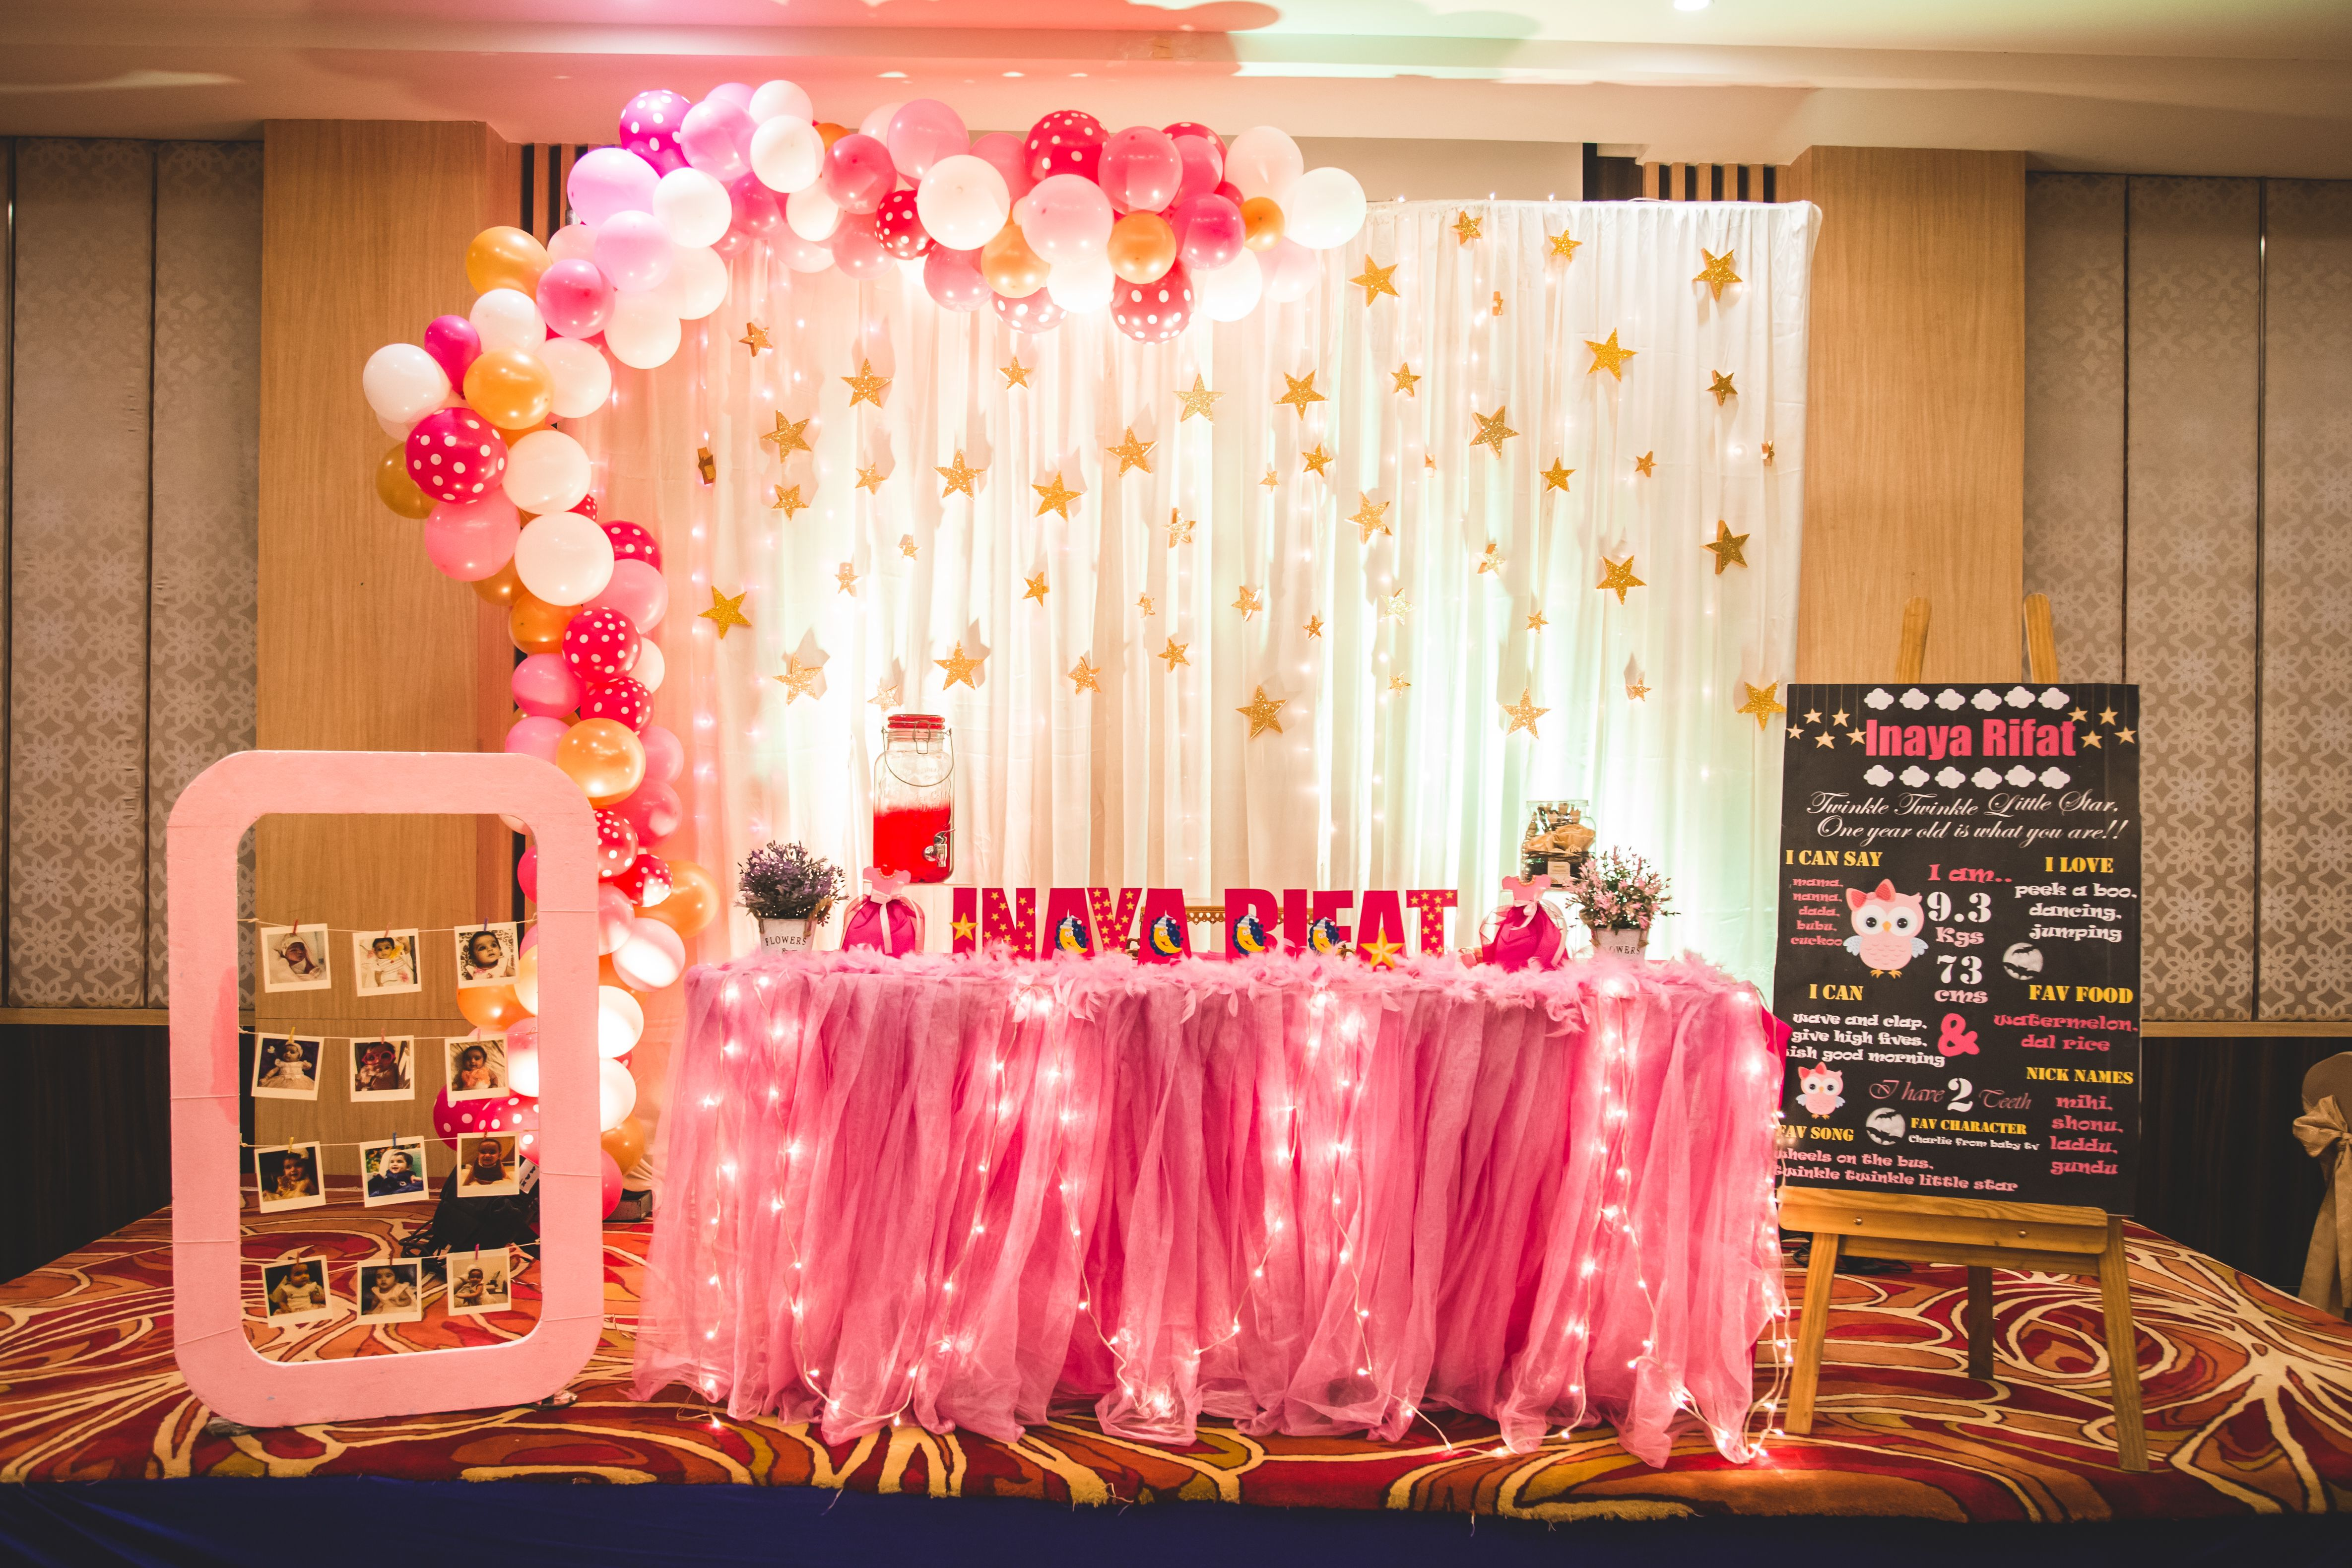 Pin By Bonjour Events On Birthday Party Decoration Ideas Birthday Party Decorations Outdoor Birthday Decorations Anniversary Decorations